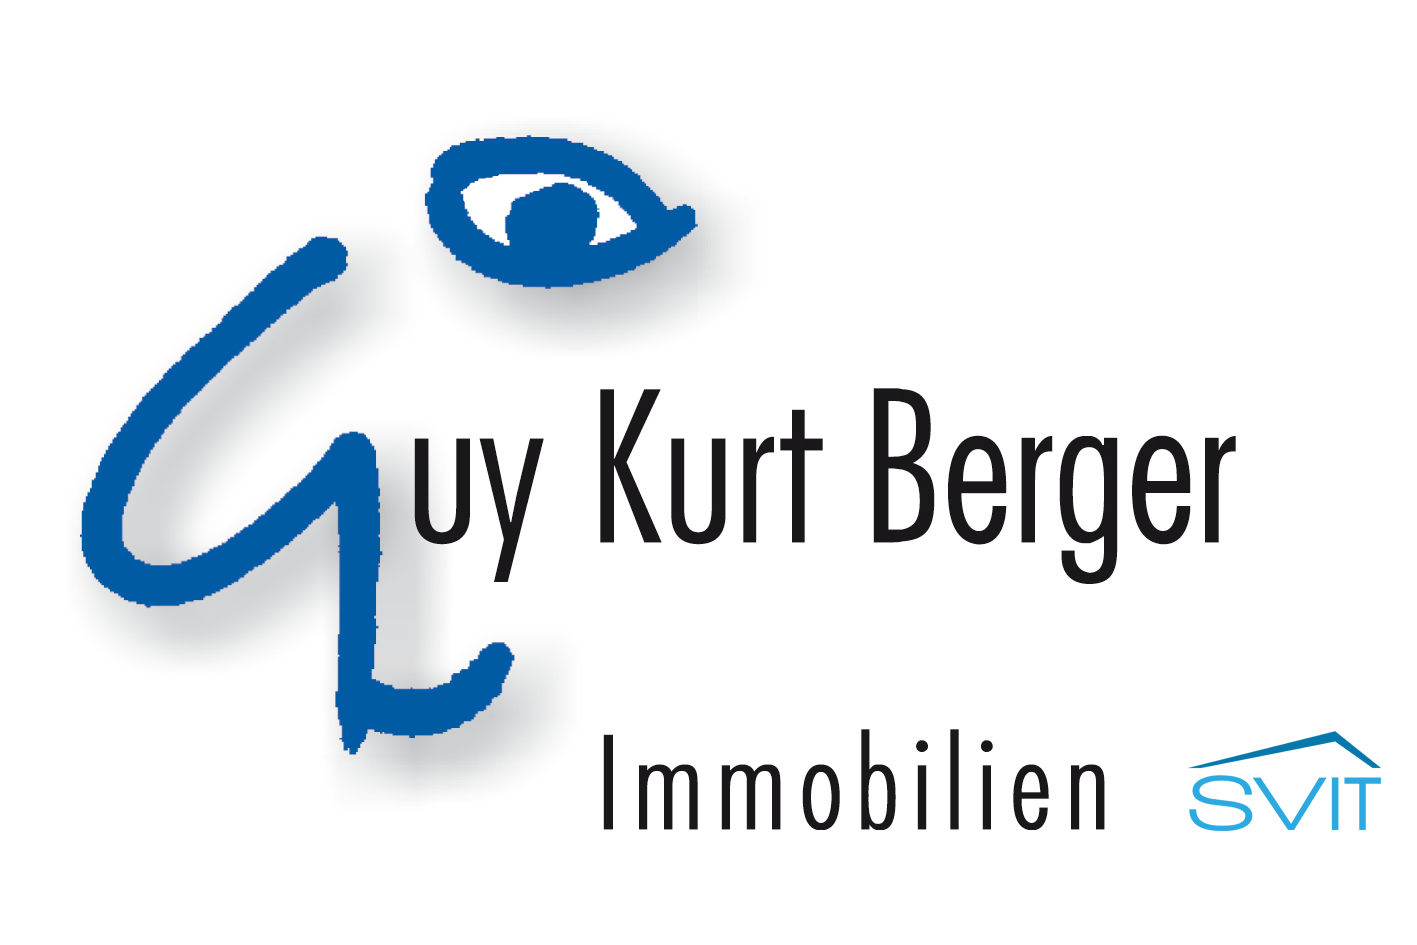 Guy Kurt Berger Immobilien